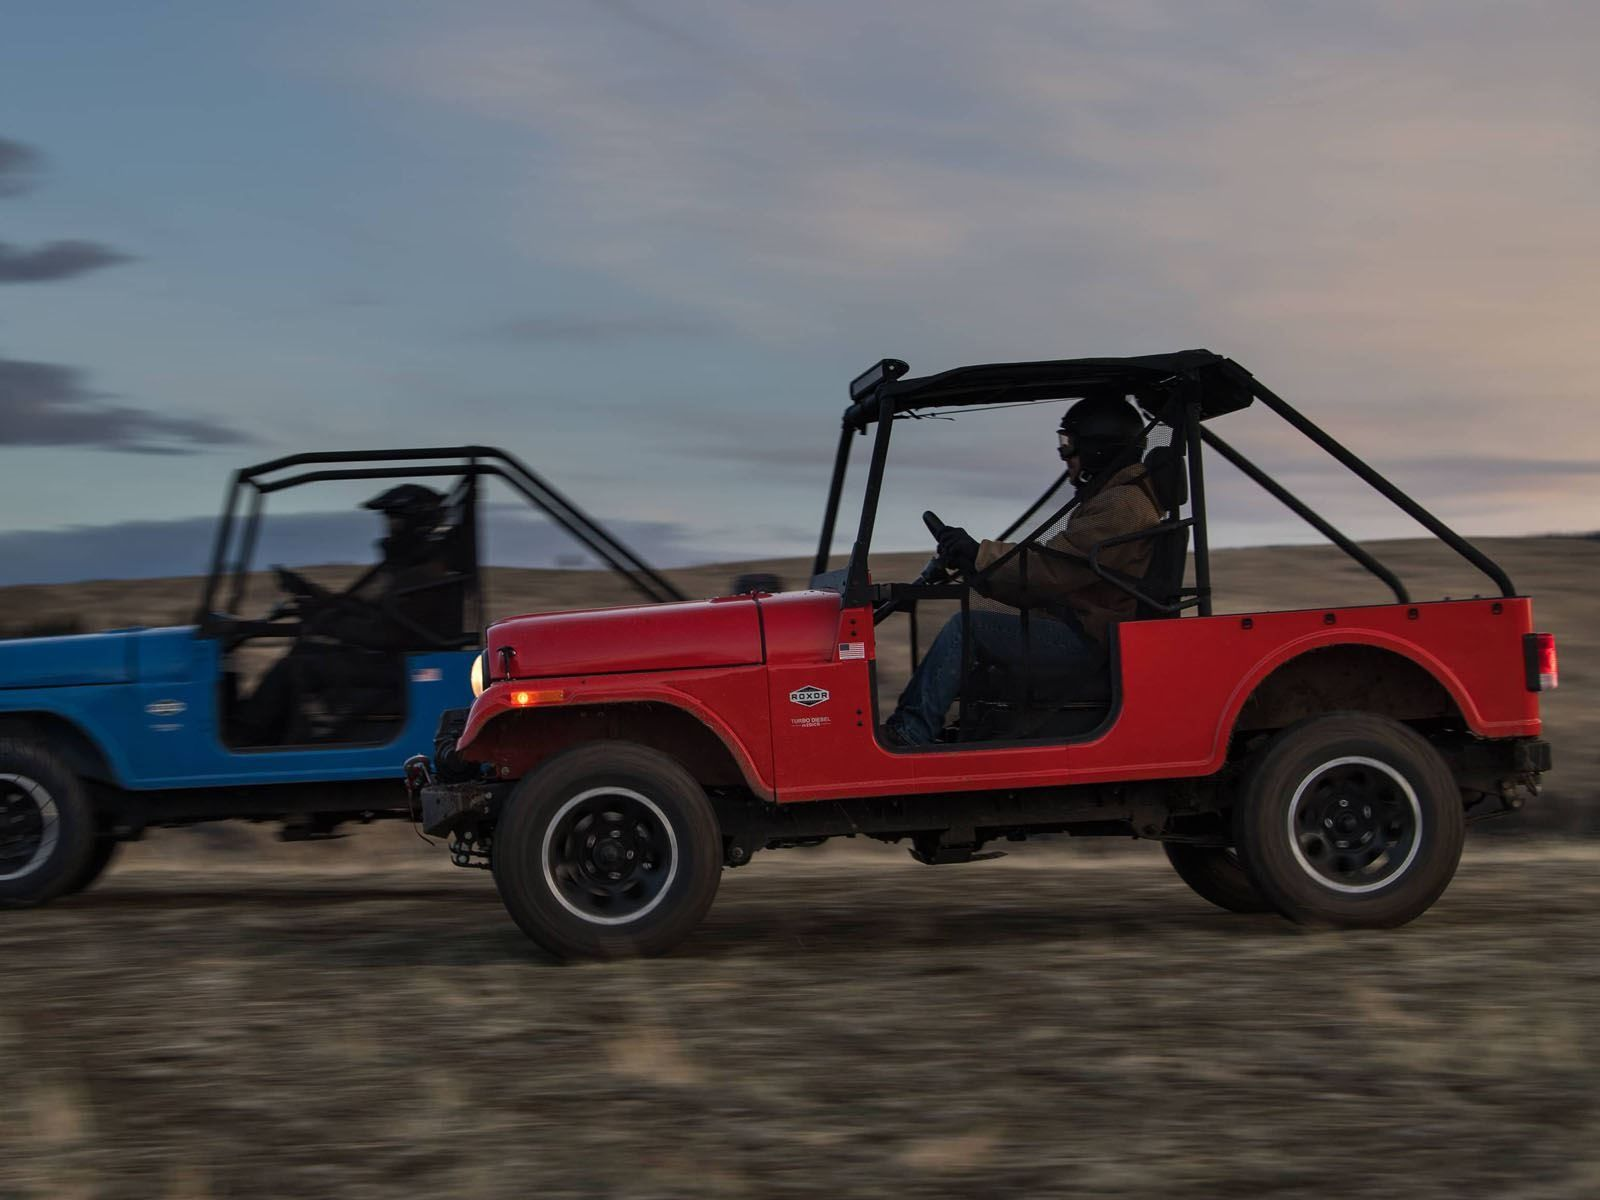 Here S How Similar The Mahindra Roxor Is To An Old Jeep Cj Jeep